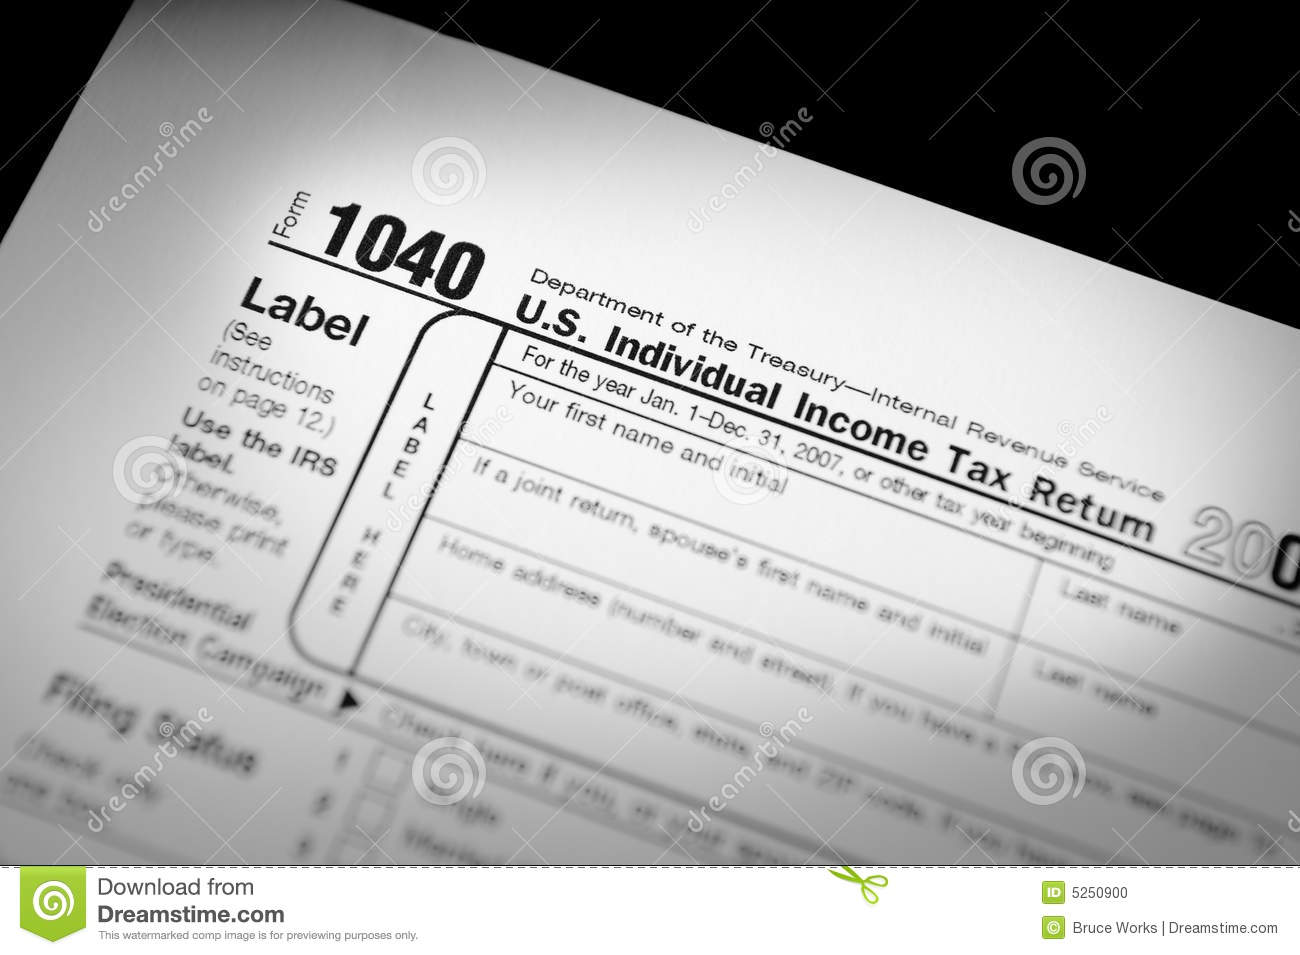 Irs form 1040 stock photo image of 1040 dependents revenue irs form 1040 falaconquin